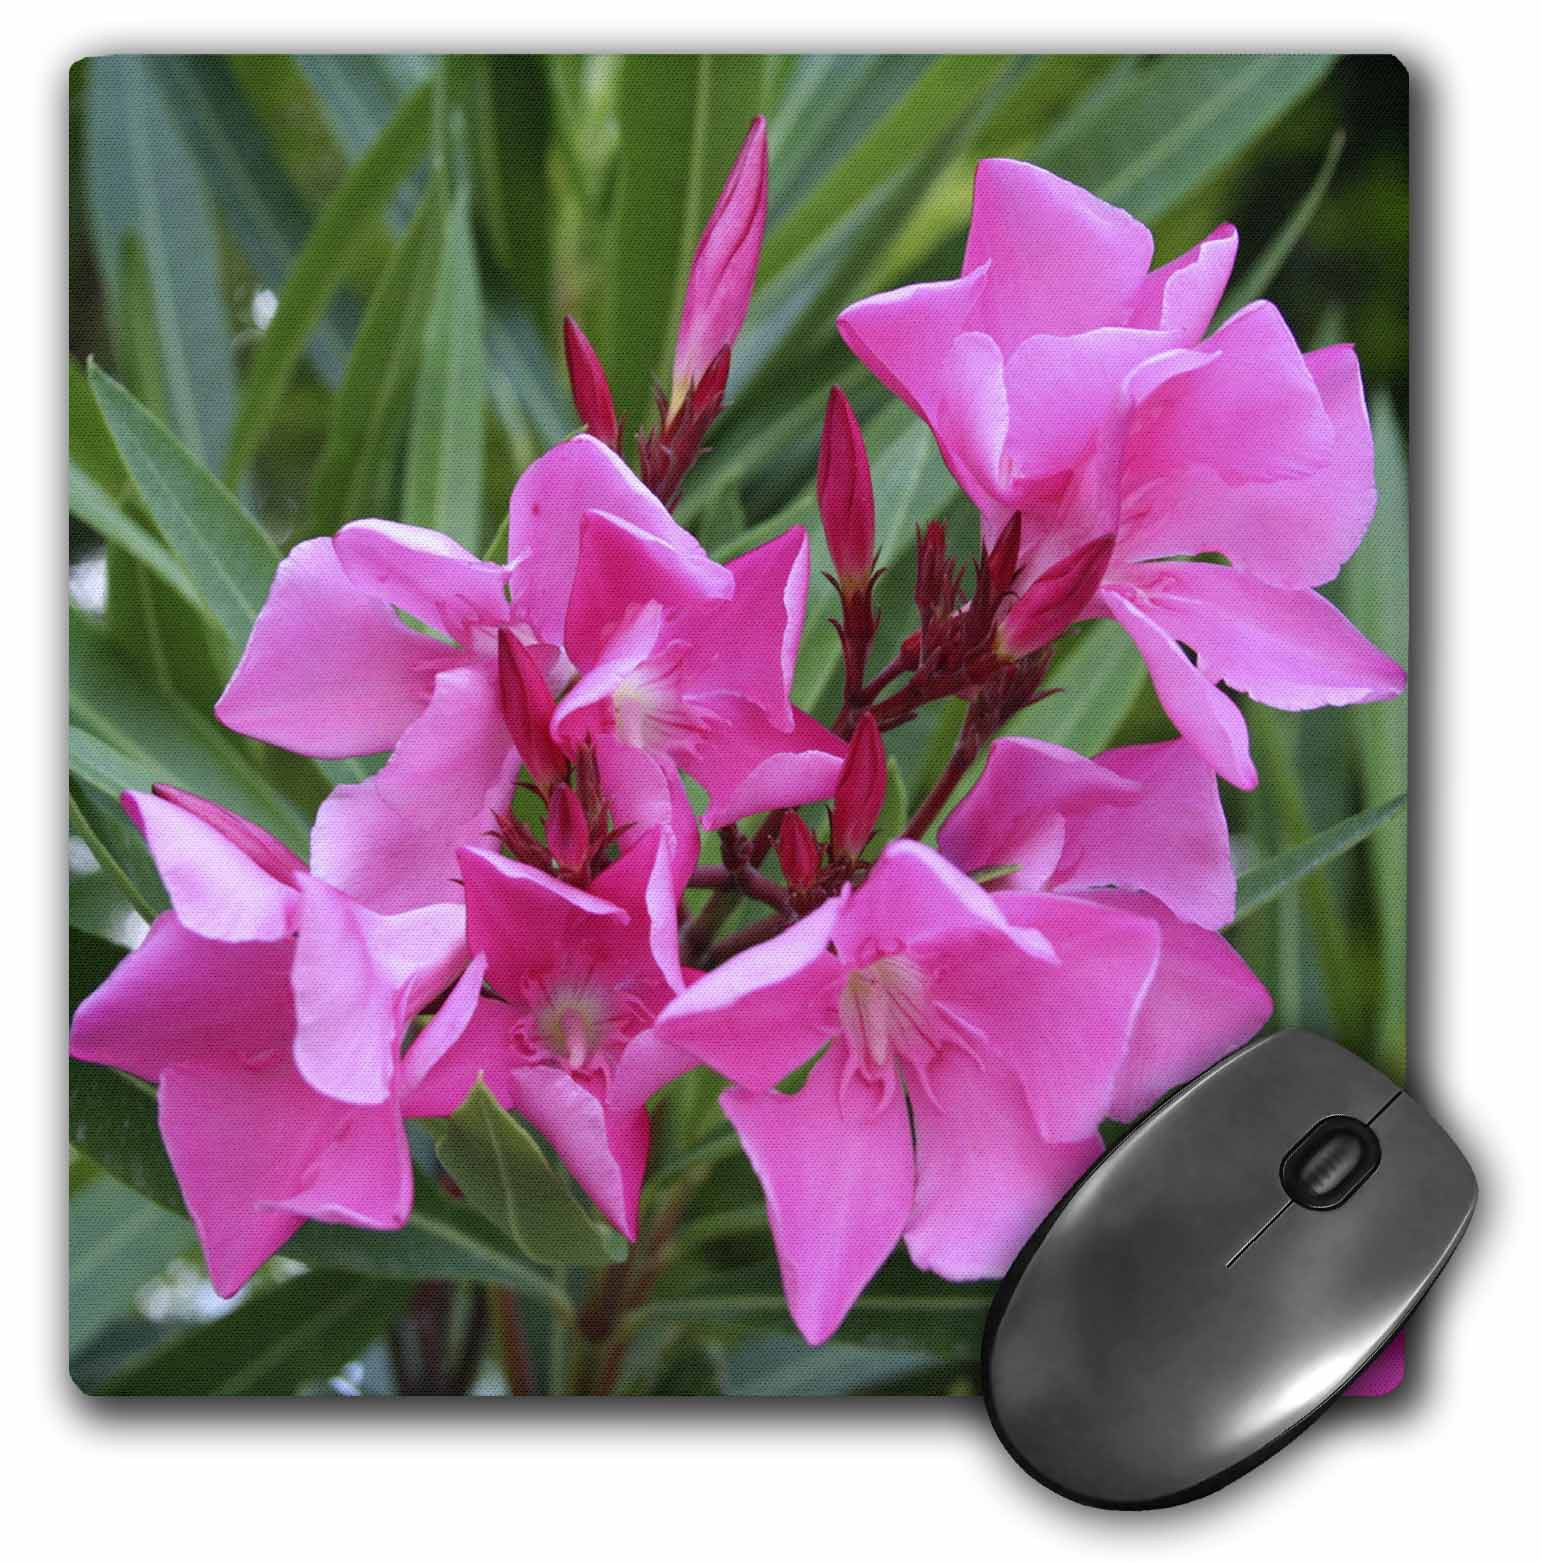 3dRose Oleander Pink pink, flower, tree, oleander, blossom, tropical plant, buds, Mouse Pad, 8 by 8 inches by 3dRose